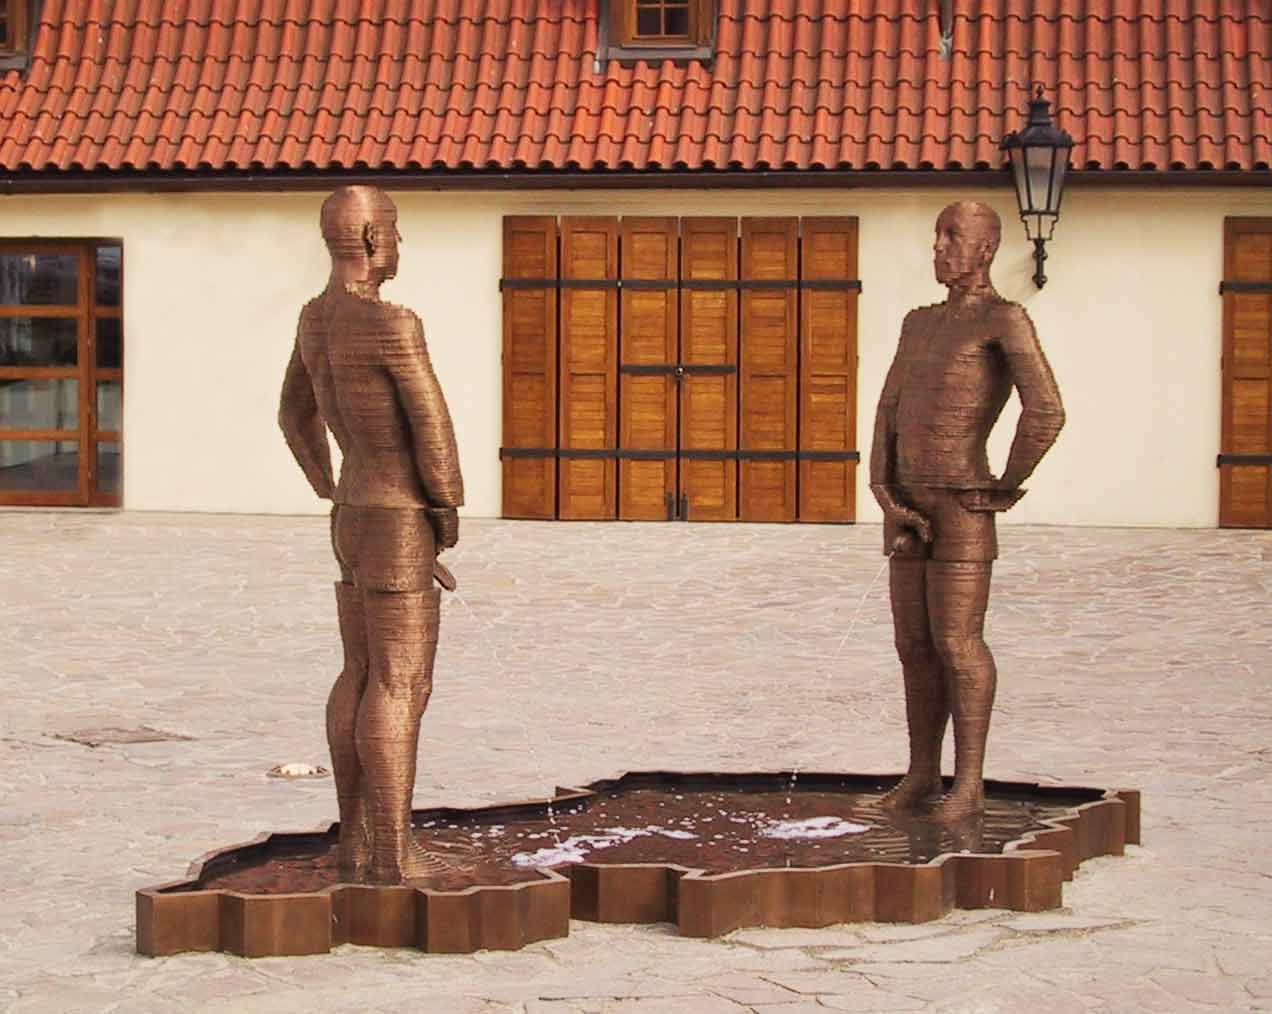 David Cerny Piss Statue in Mala Strana Prague